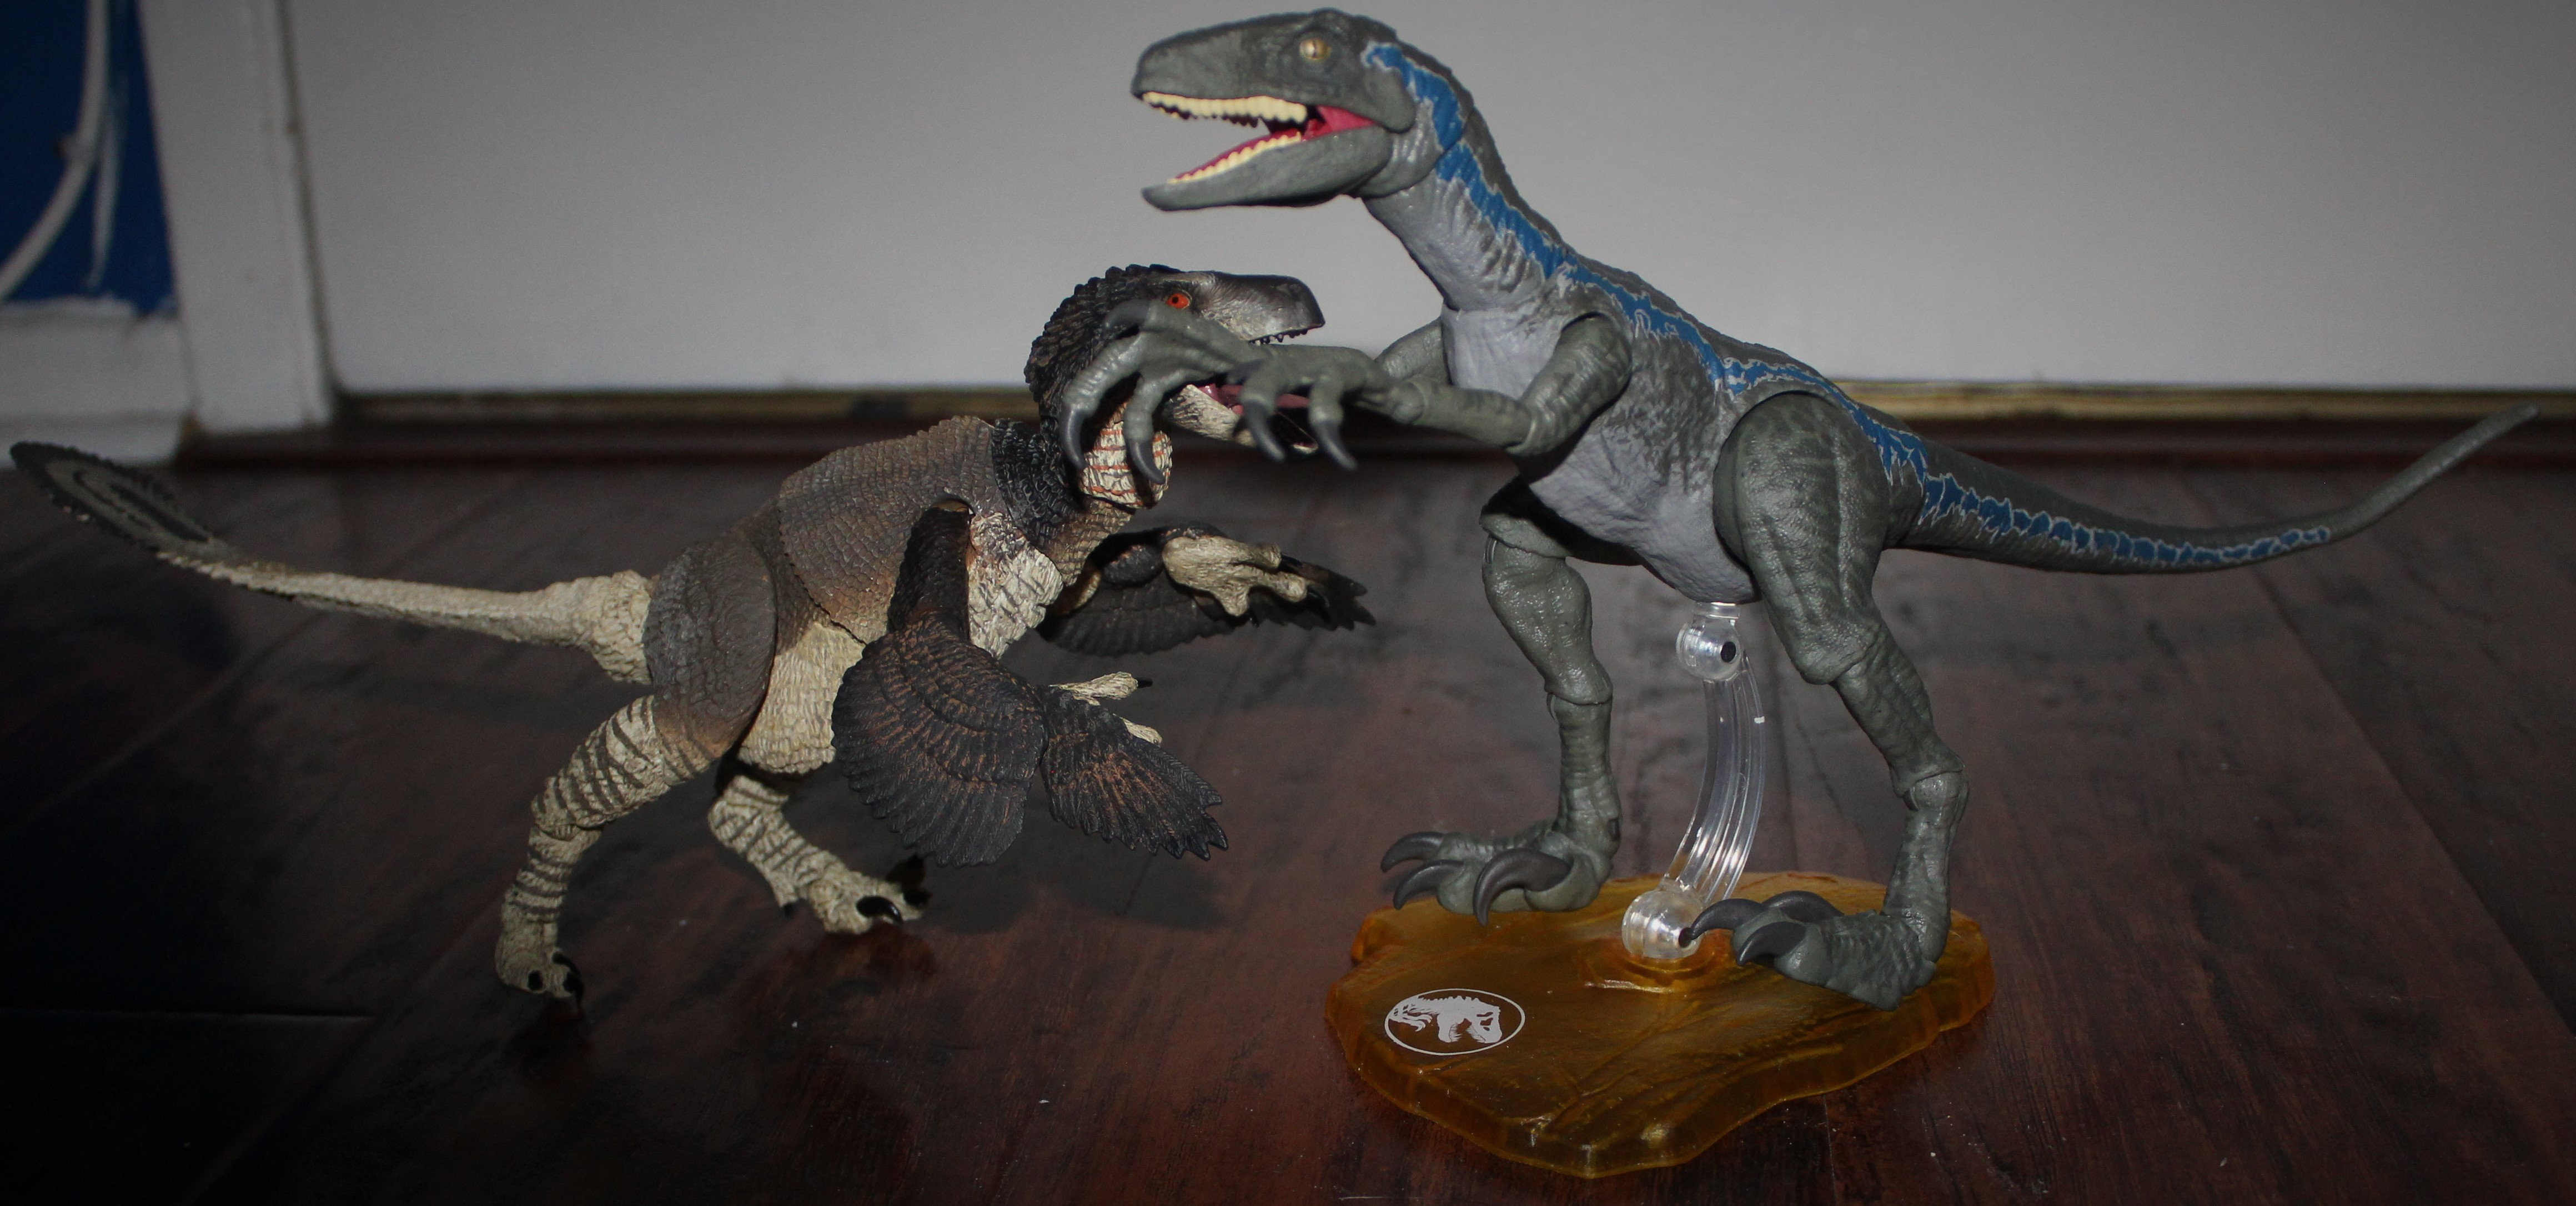 Beasts of the Mesozoic comparison.